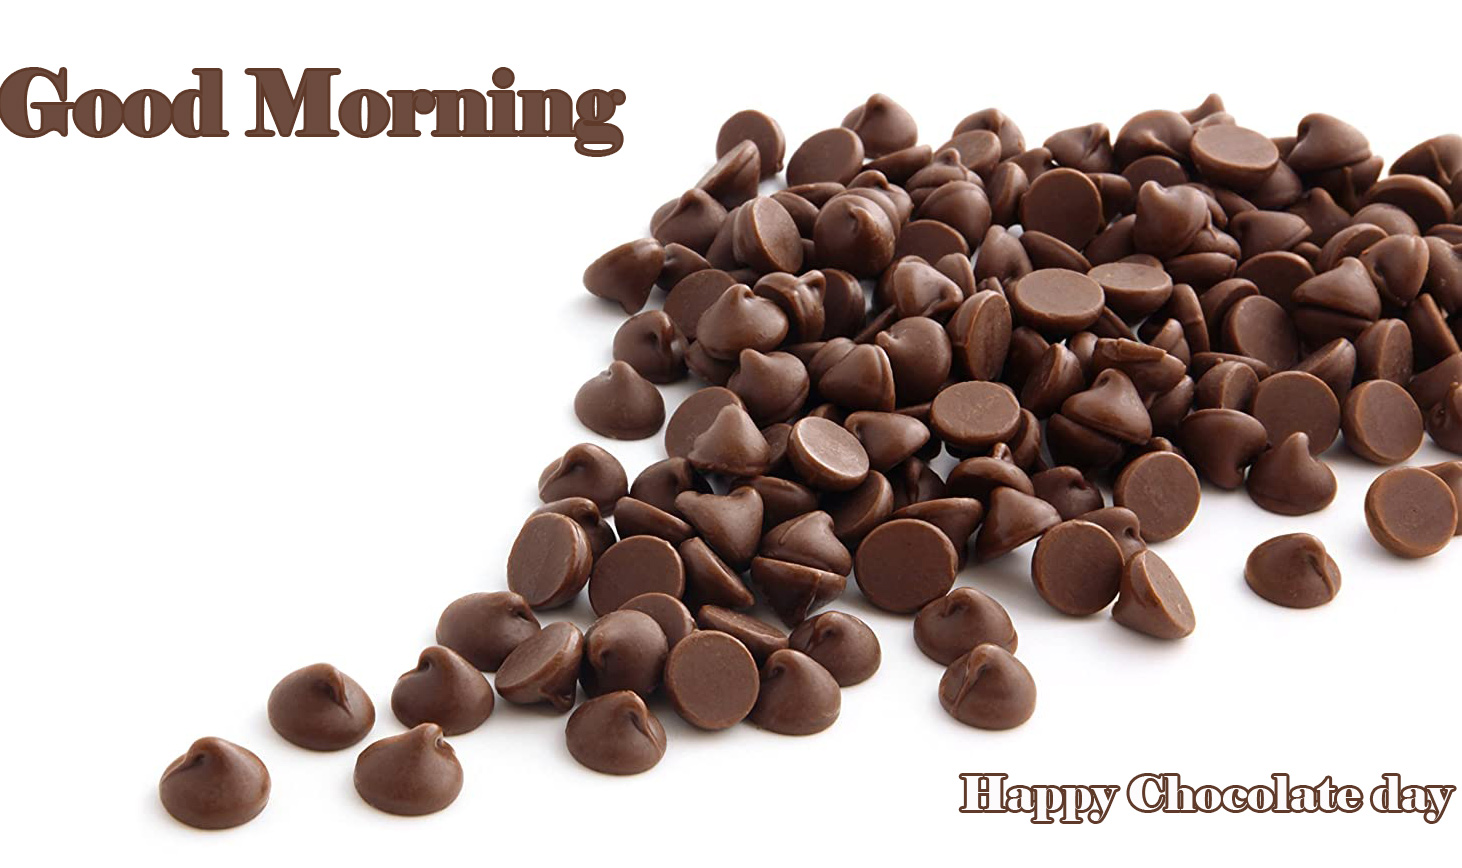 Happy Chocolate Day Good Morning Images Pics Pictures Download